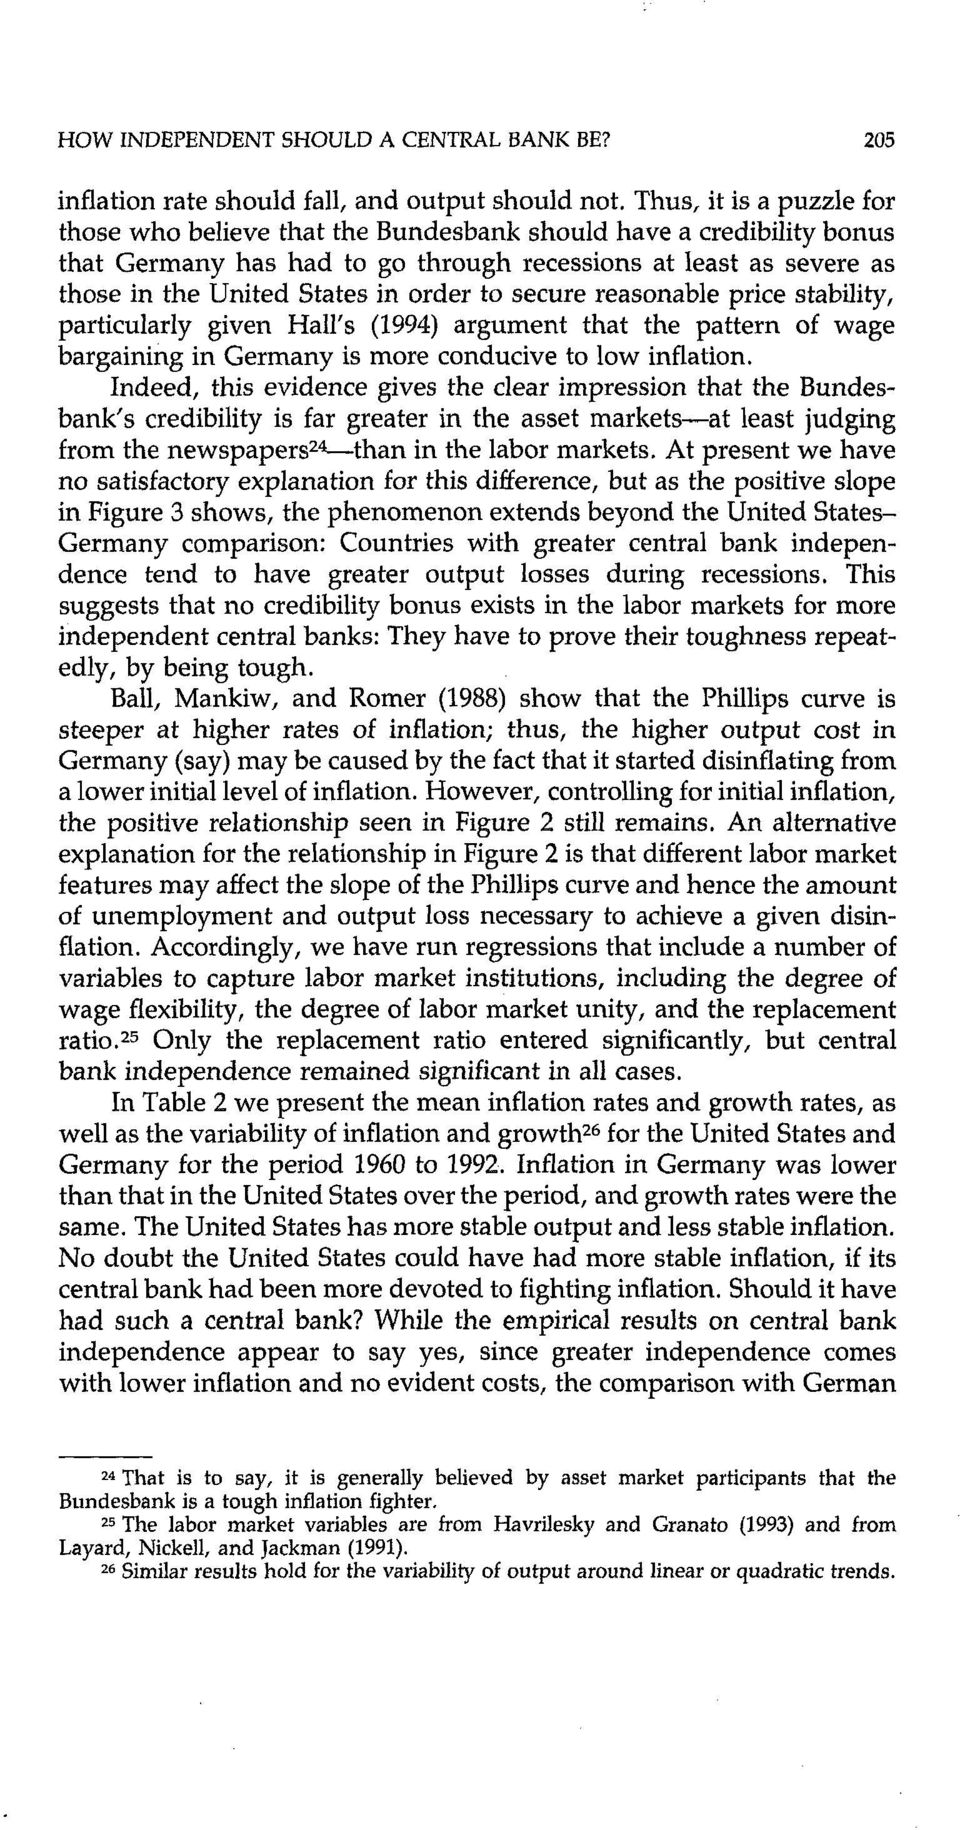 to secure reasonable price stability, particularly given Hall s (1994) argument that the pattern of wage bargaining in Germany is more conducive to low inflation.